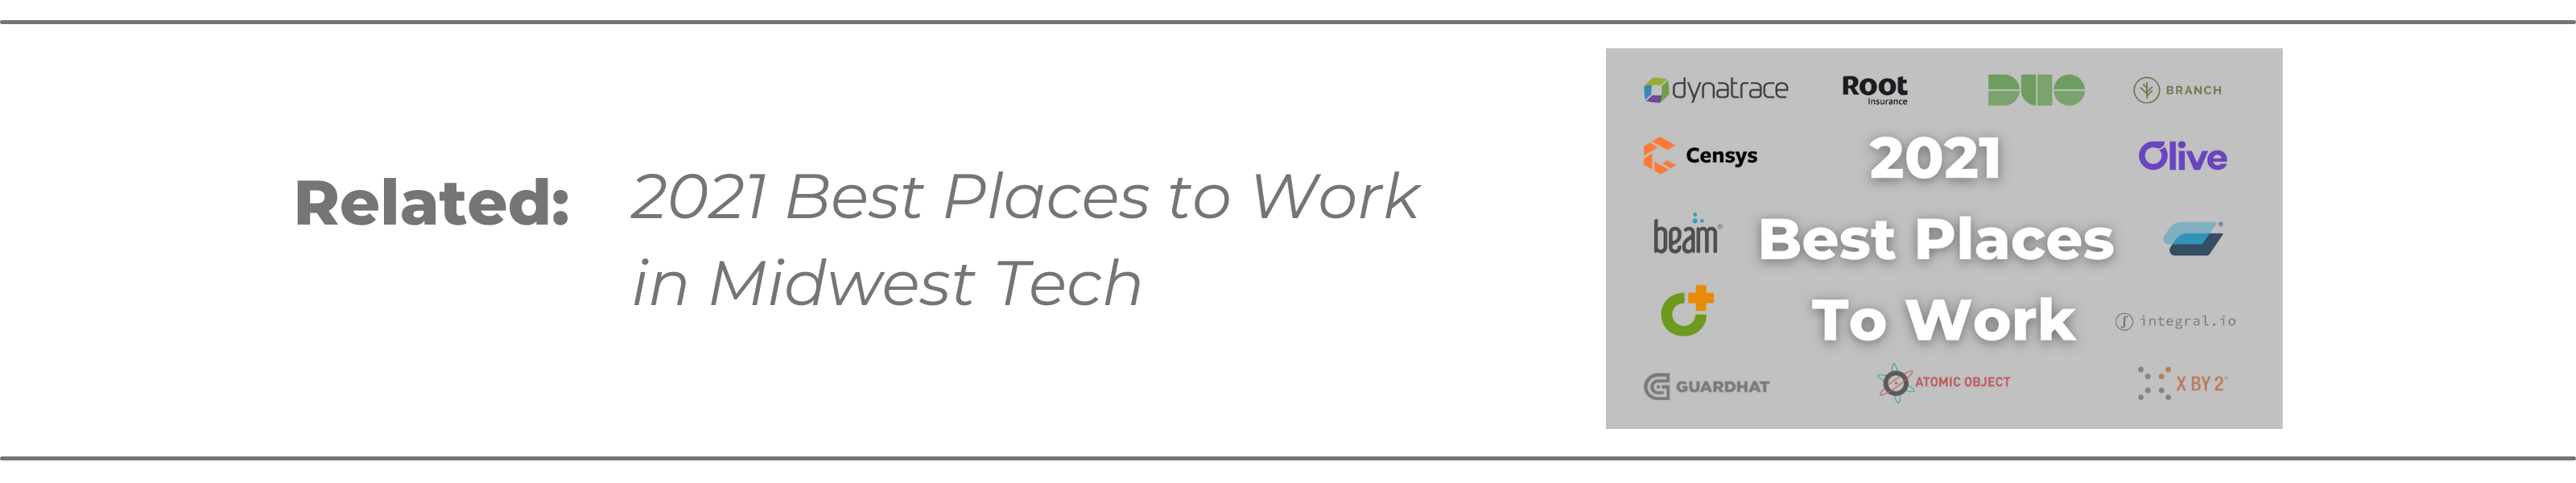 best places to work midwest tech